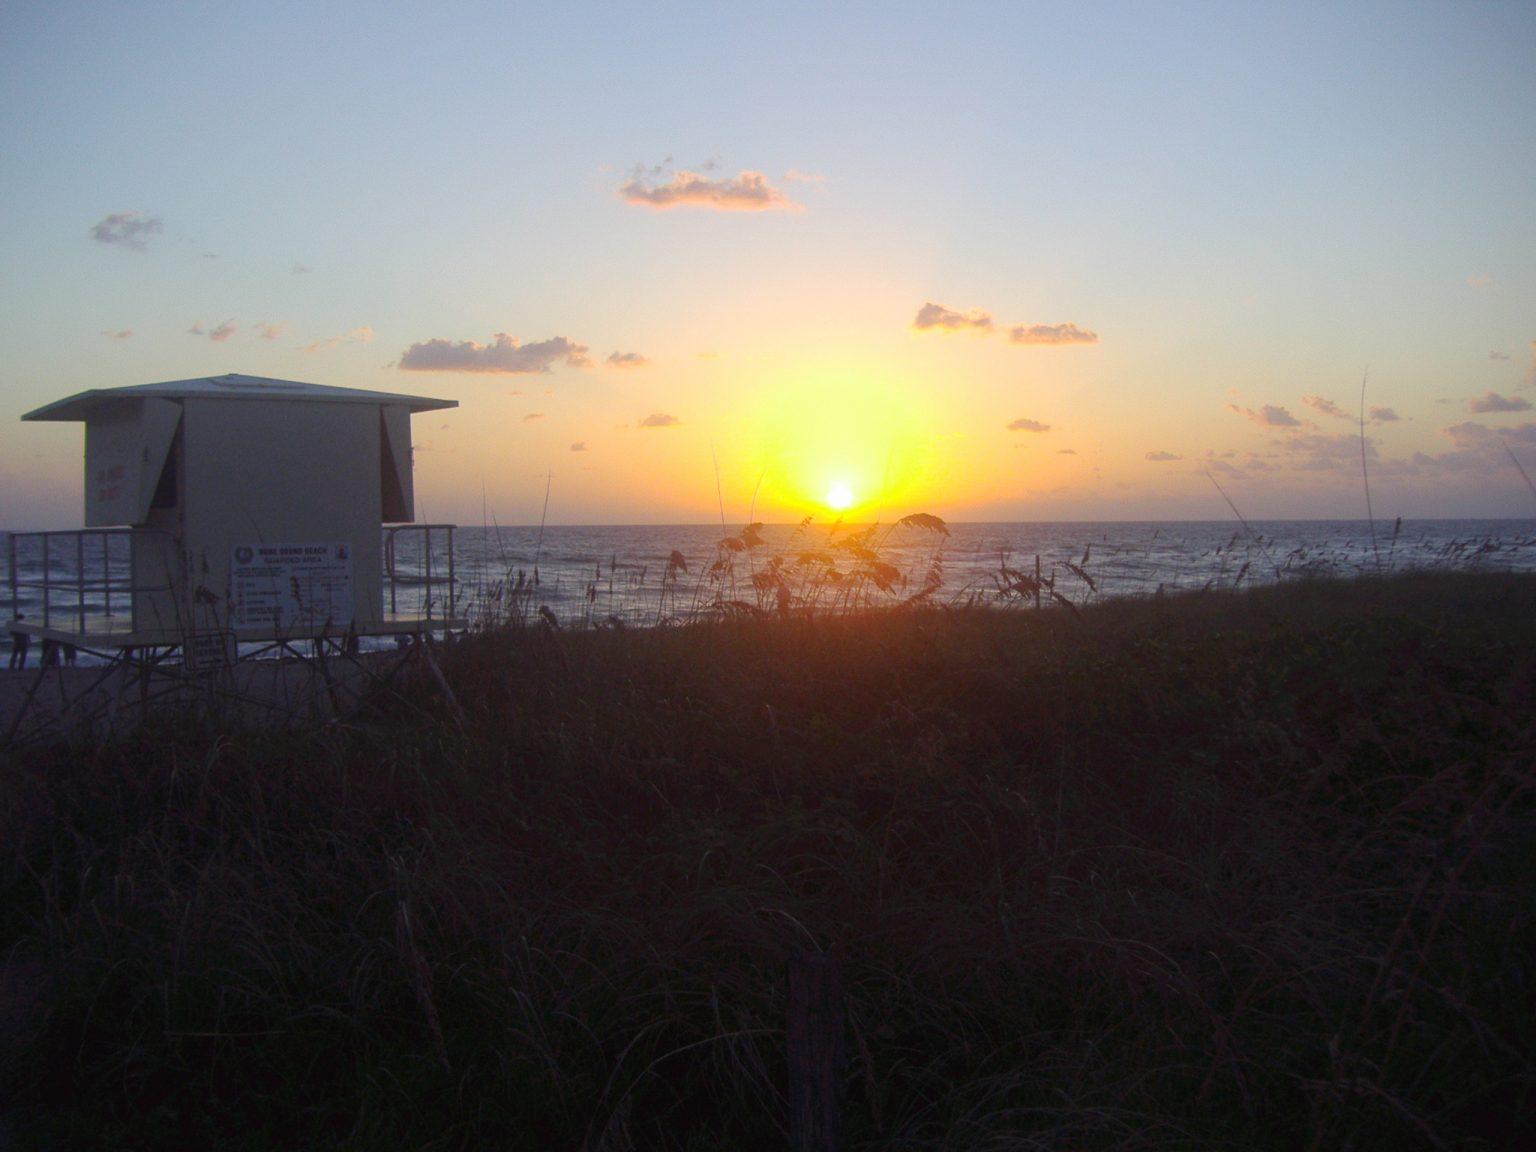 Sunset Times, Sunrise Times, Weather, Weather Forecasts for Sunset Times By Zip Code